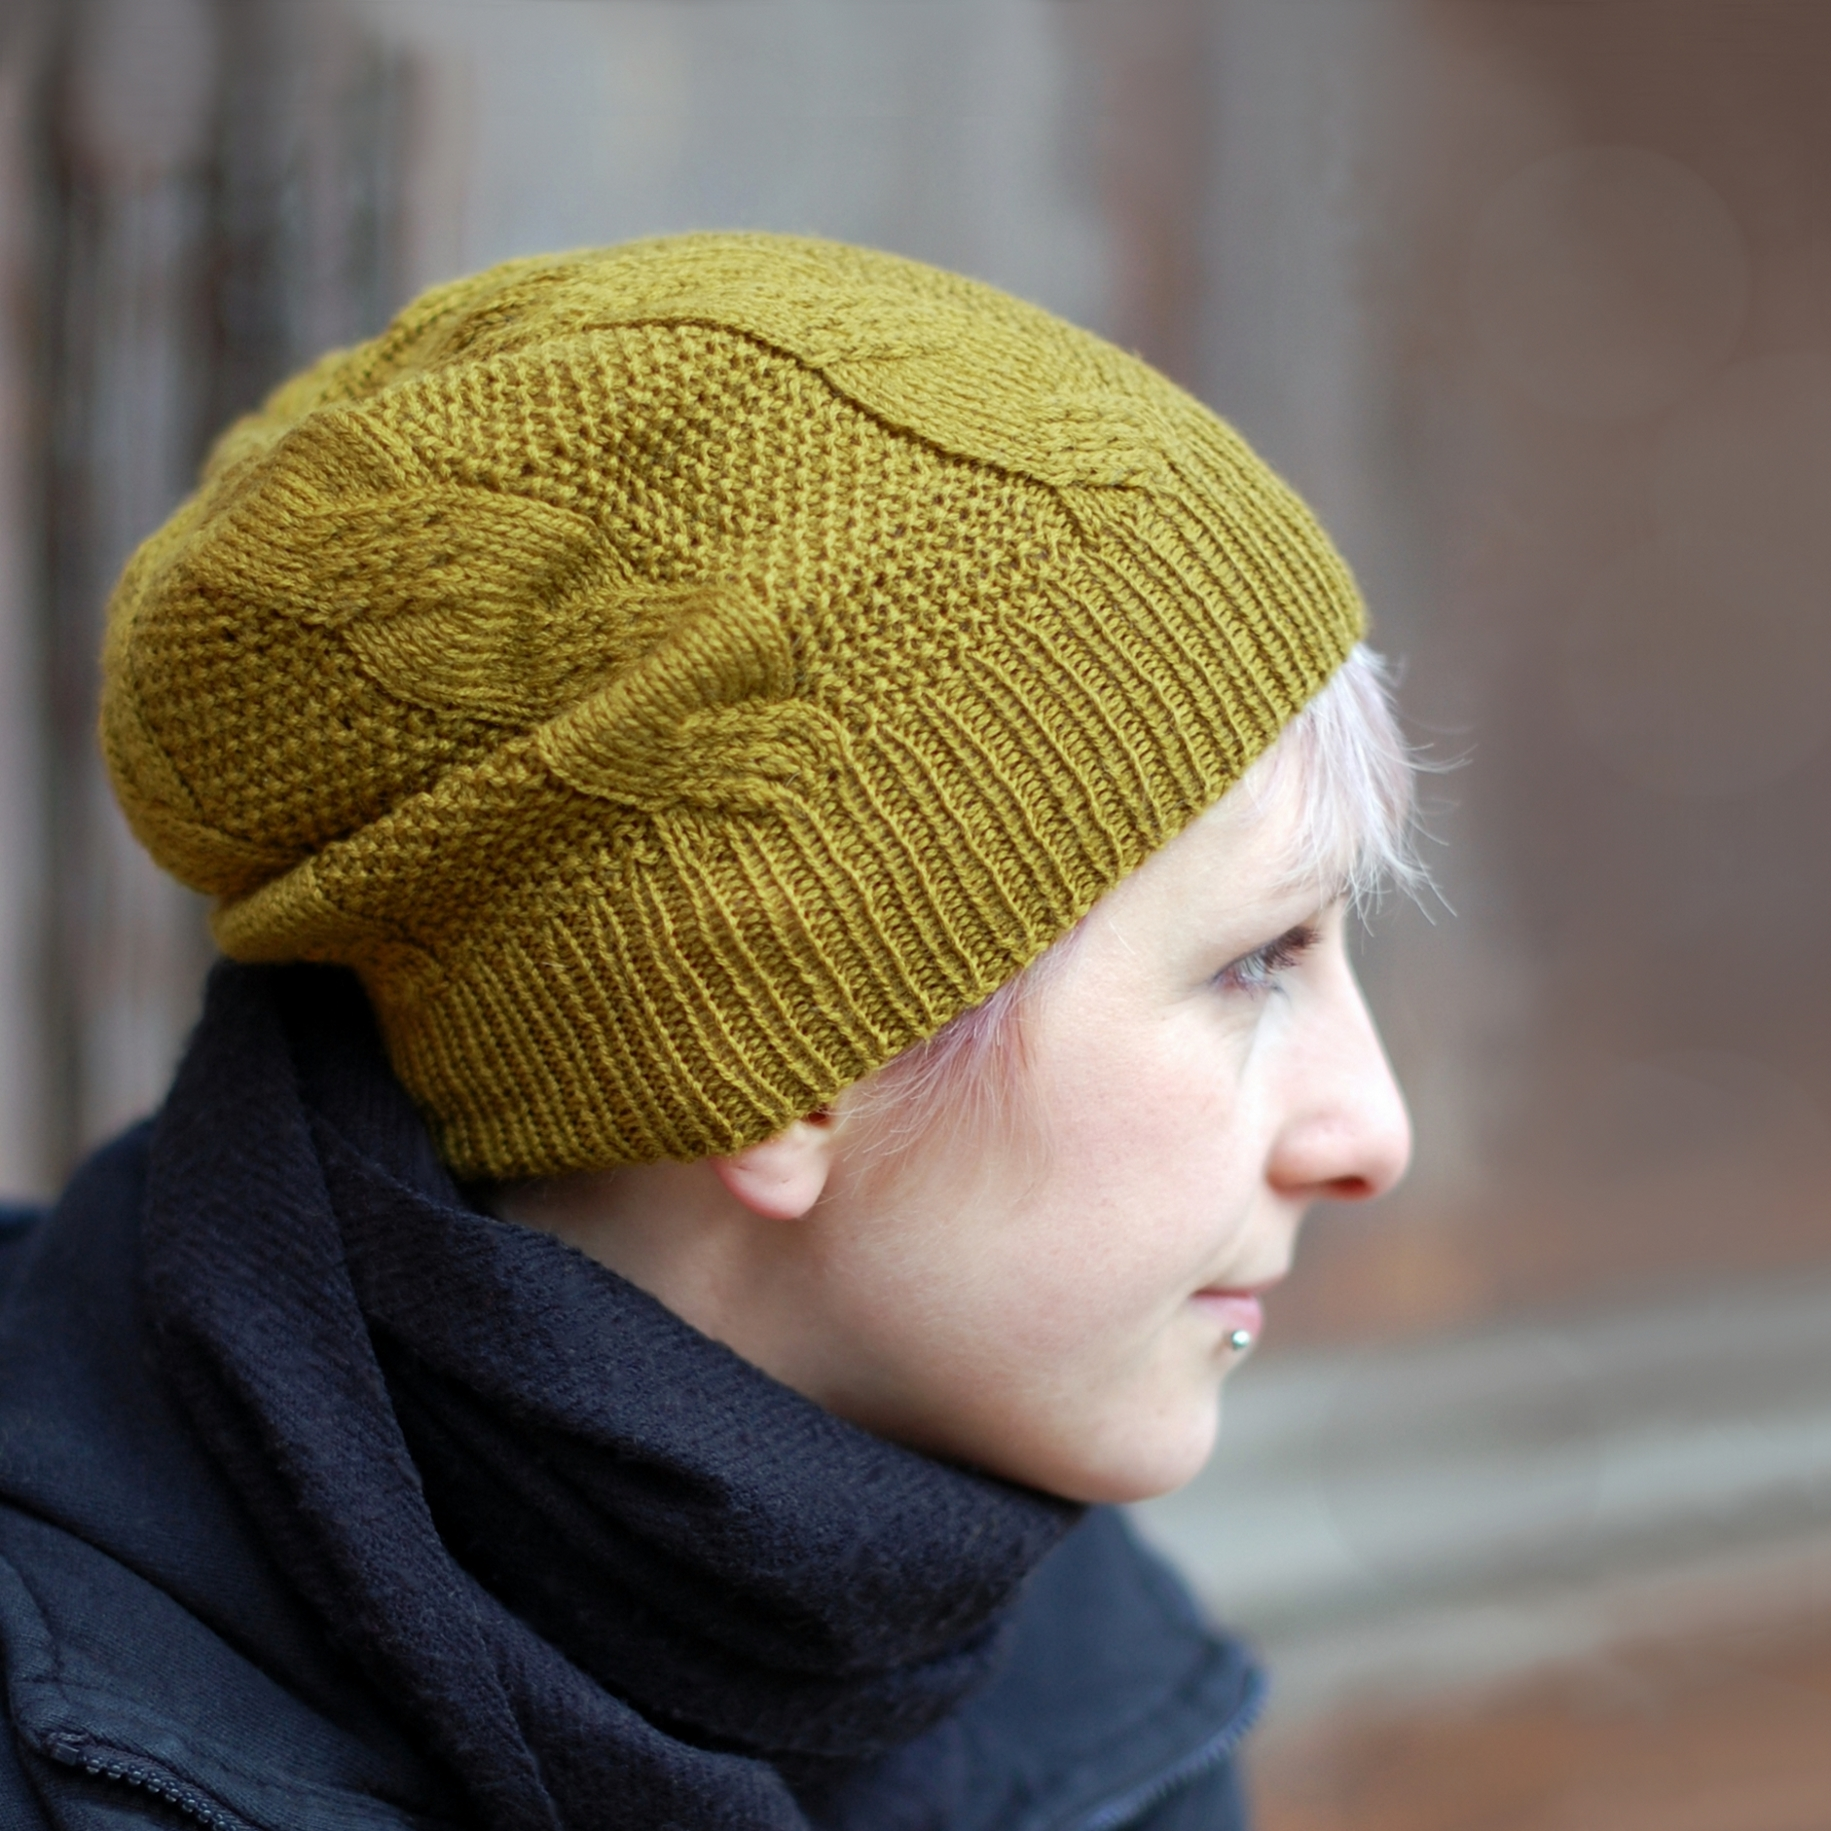 Slable cabled hat - knitting pattern